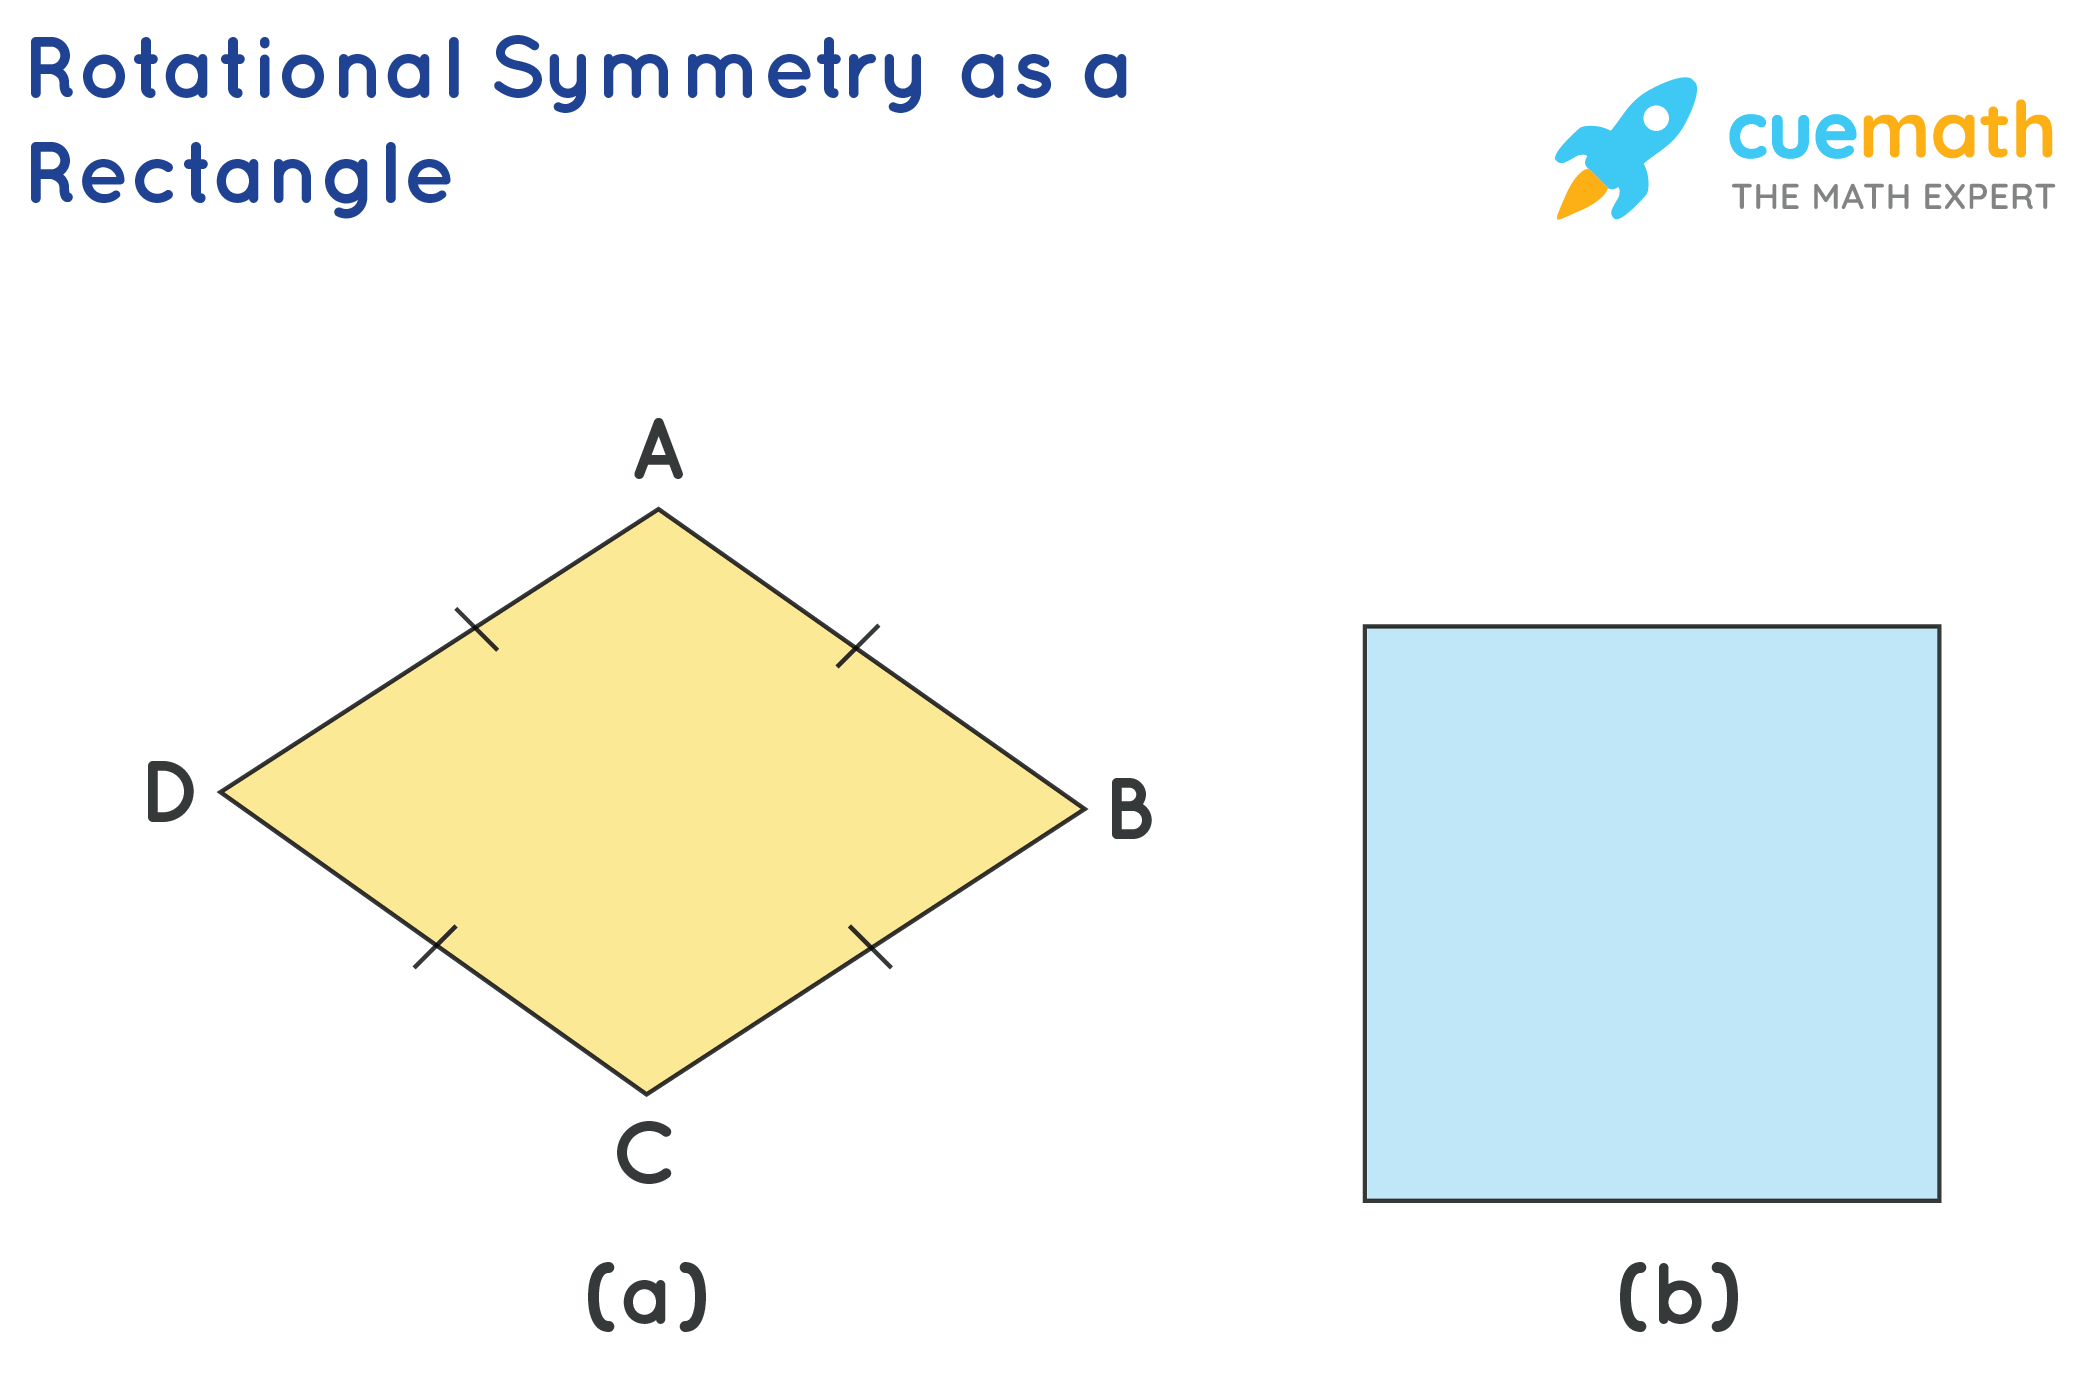 Rotational symmetry as same as that of rectangle